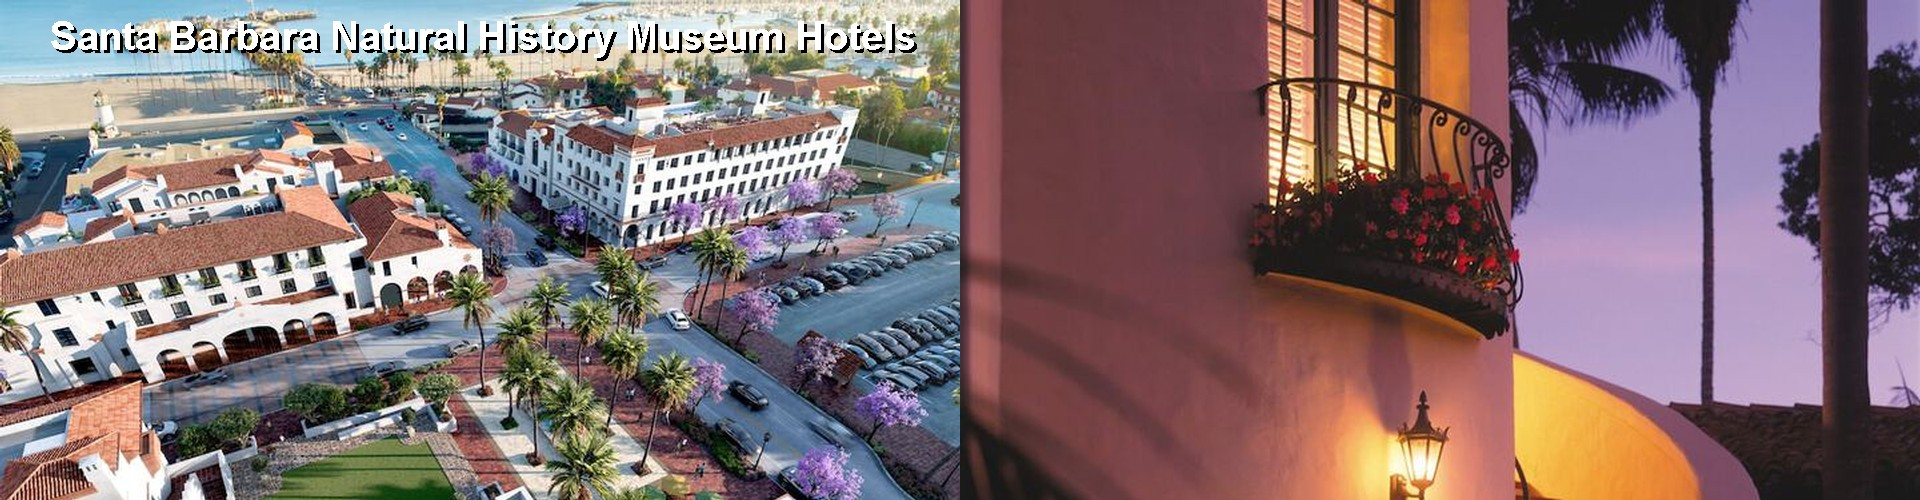 5 Best Hotels near Santa Barbara Natural History Museum